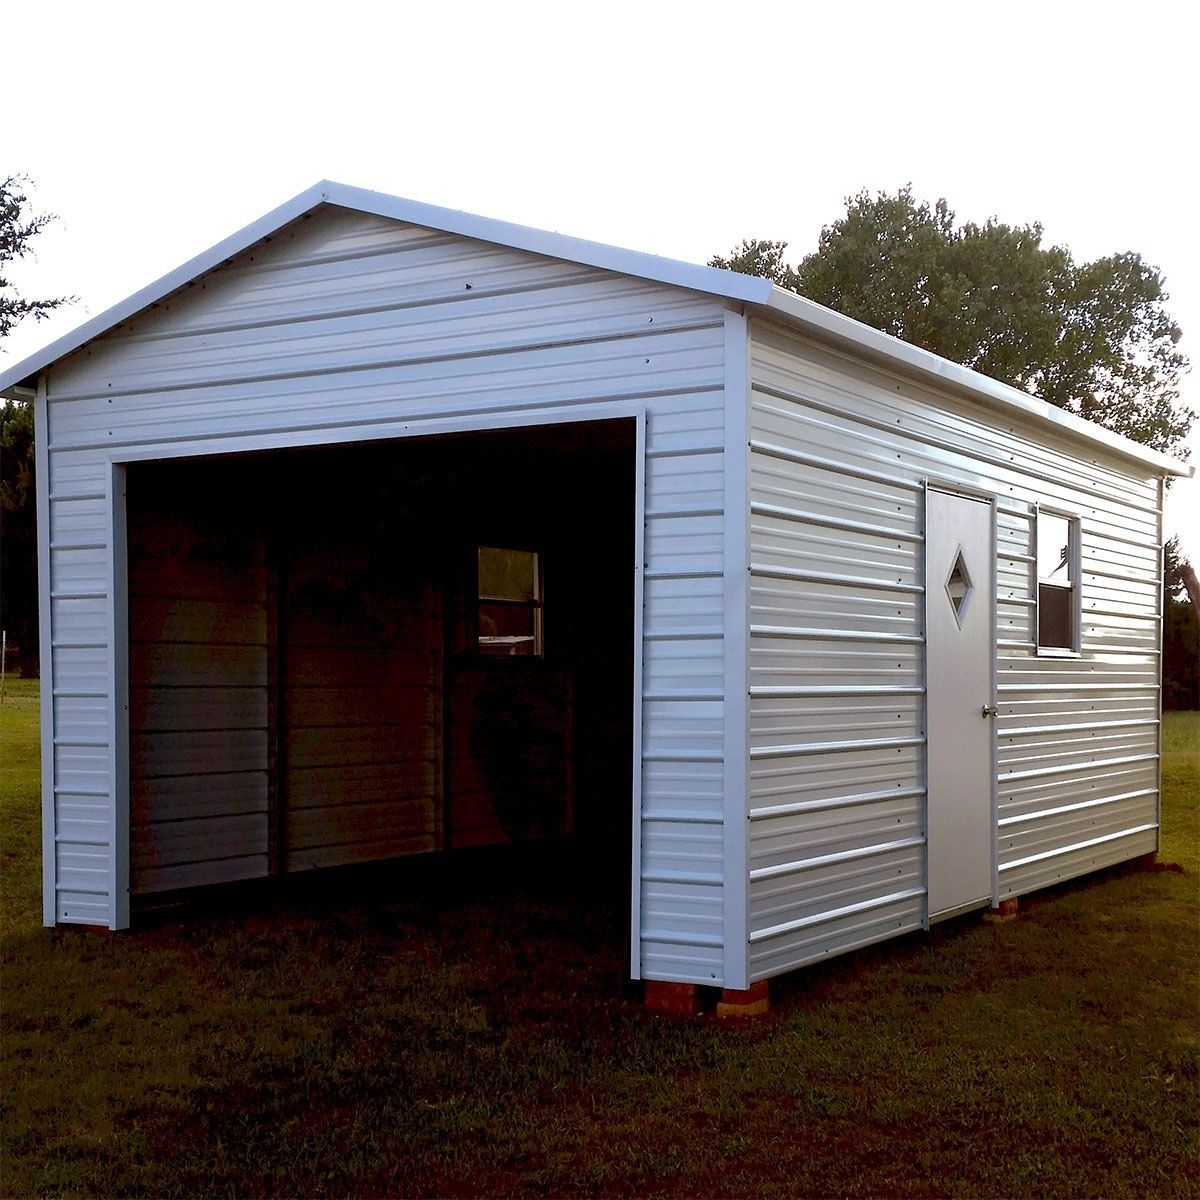 Carport Metal shed, Carport sheds, Carport